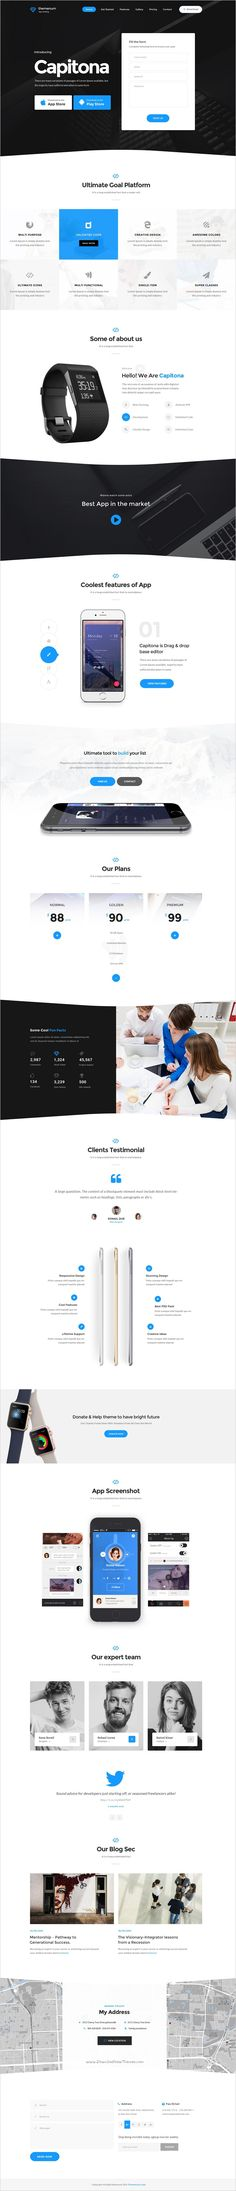 Themenum is a wonderful 6 in 1 #Bootstrap #onepge landing page #template for app startups website download now➯ https://themeforest.net/item/themenum-multipurpose-app-showcase-responsive-html-template/17184042?ref=Datasata